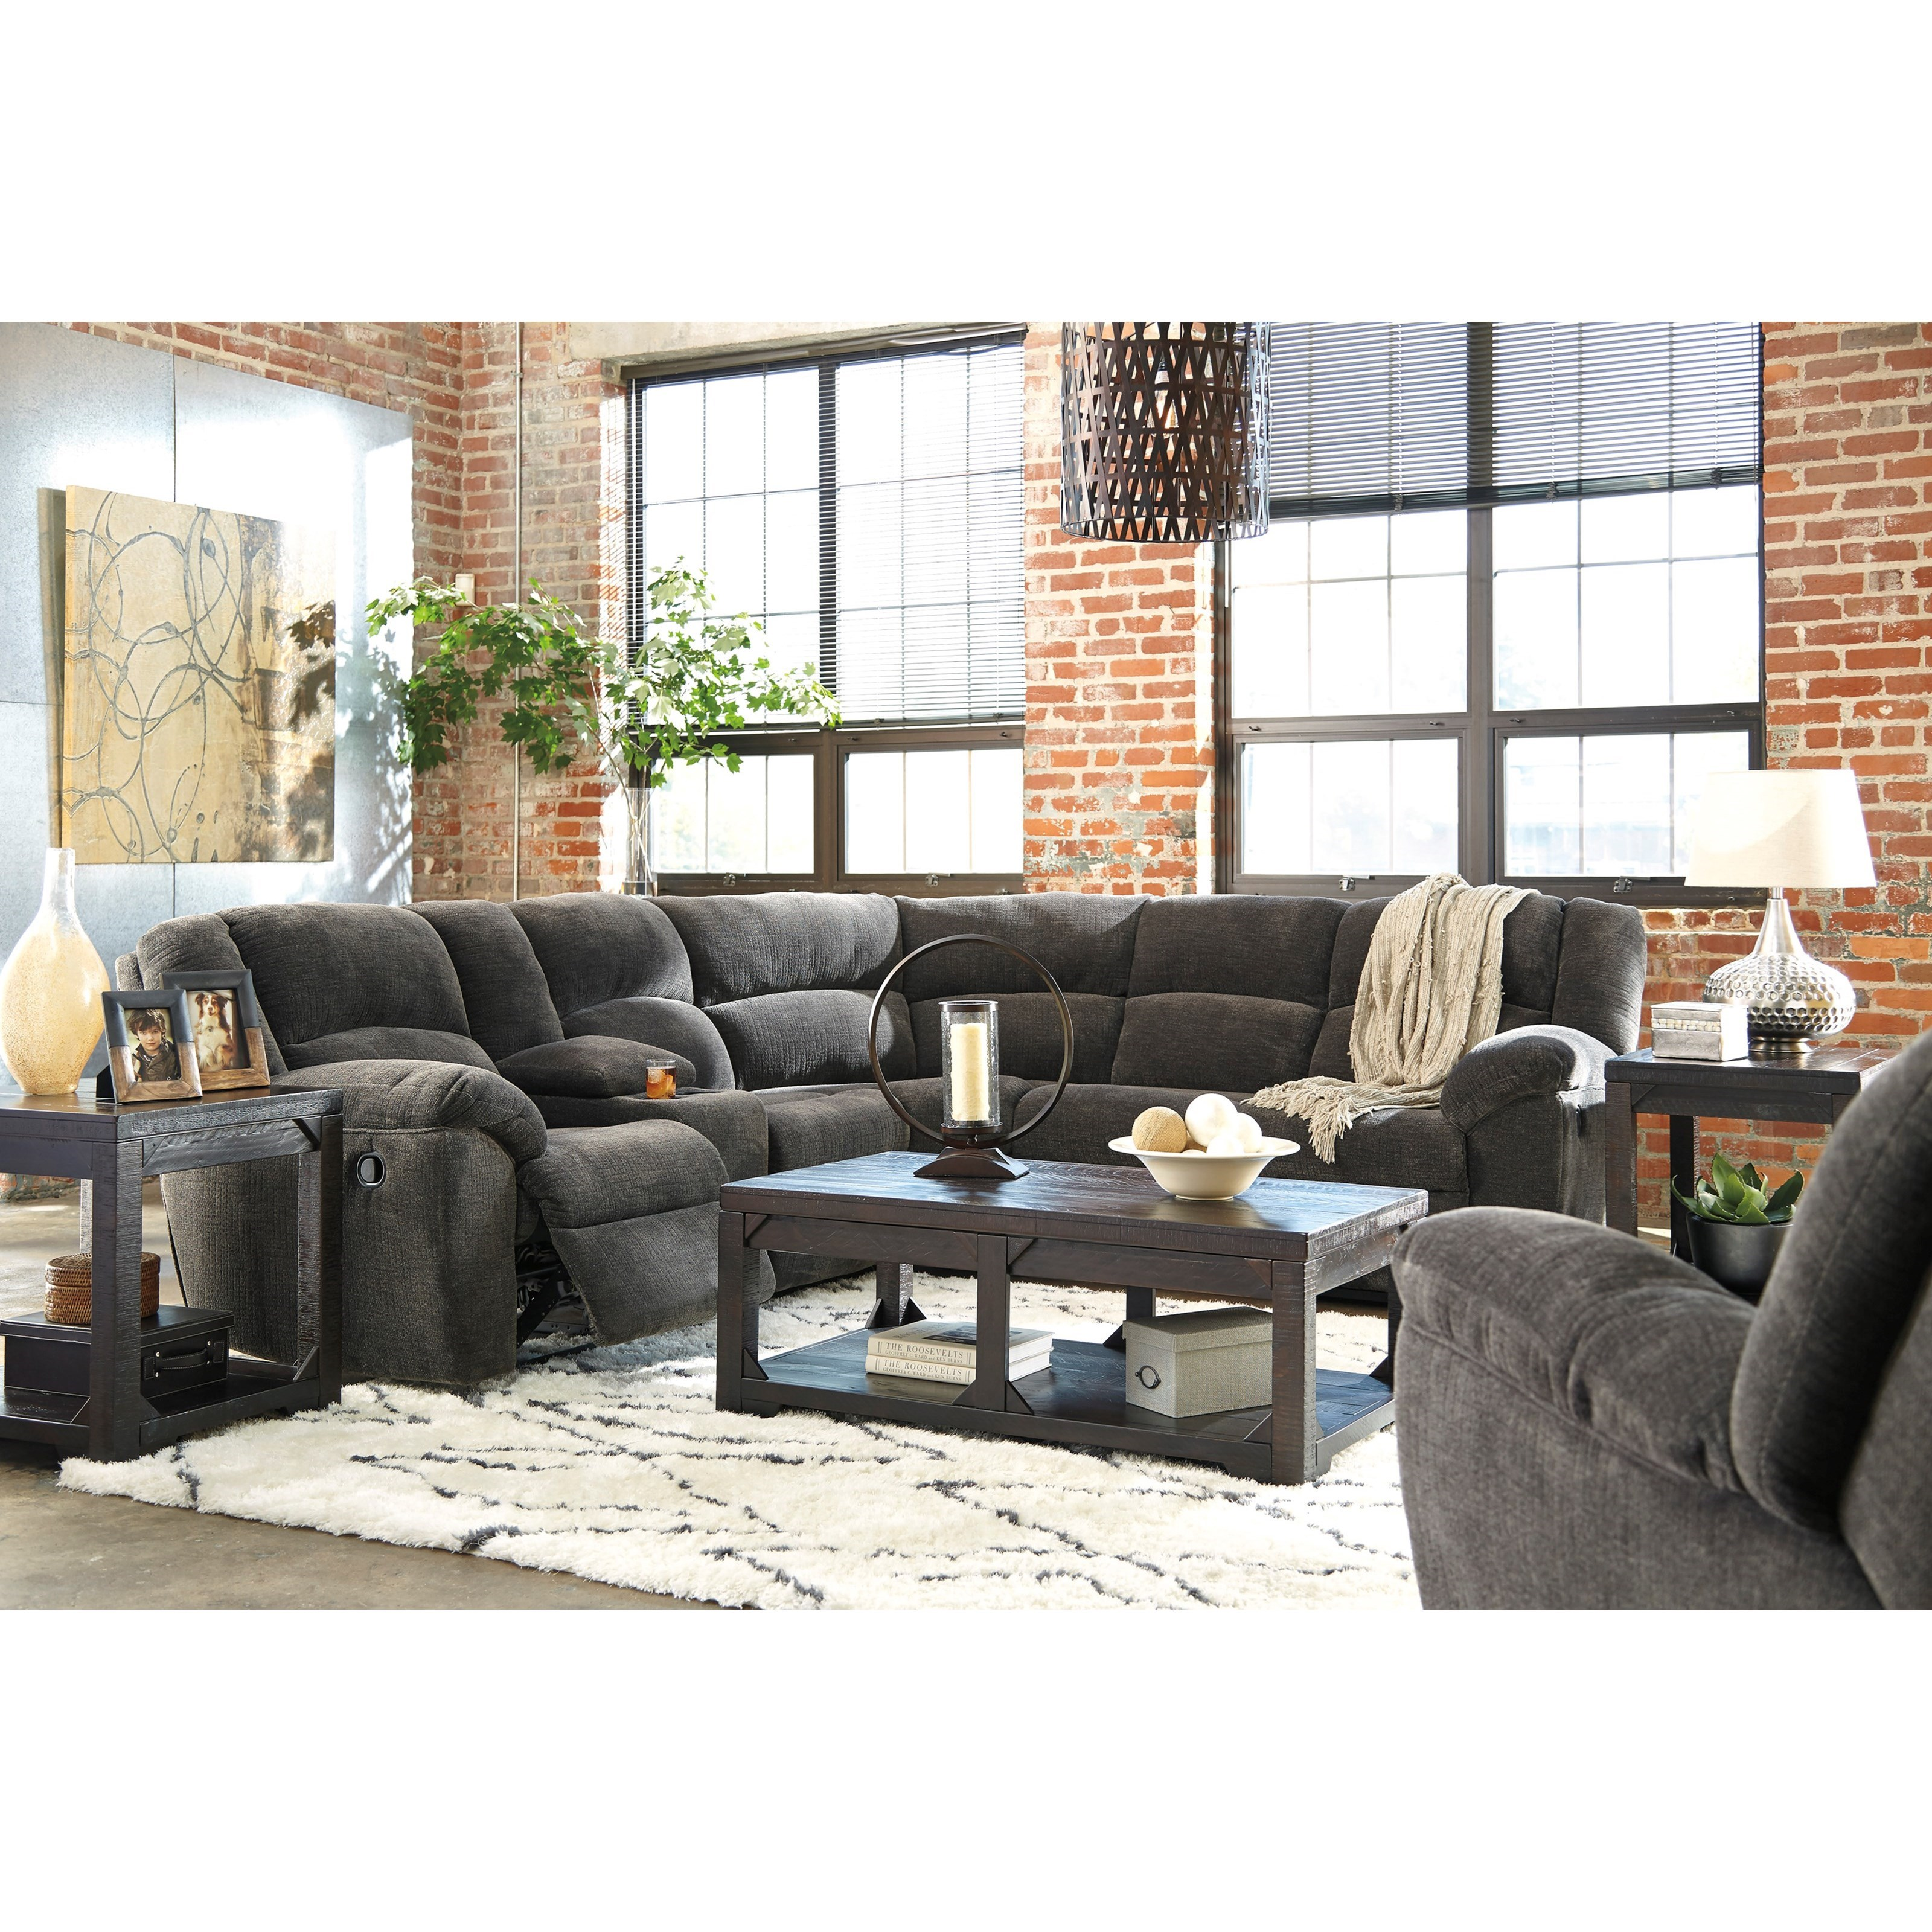 Benchcraft Timpson Reclining Living Room Group Value